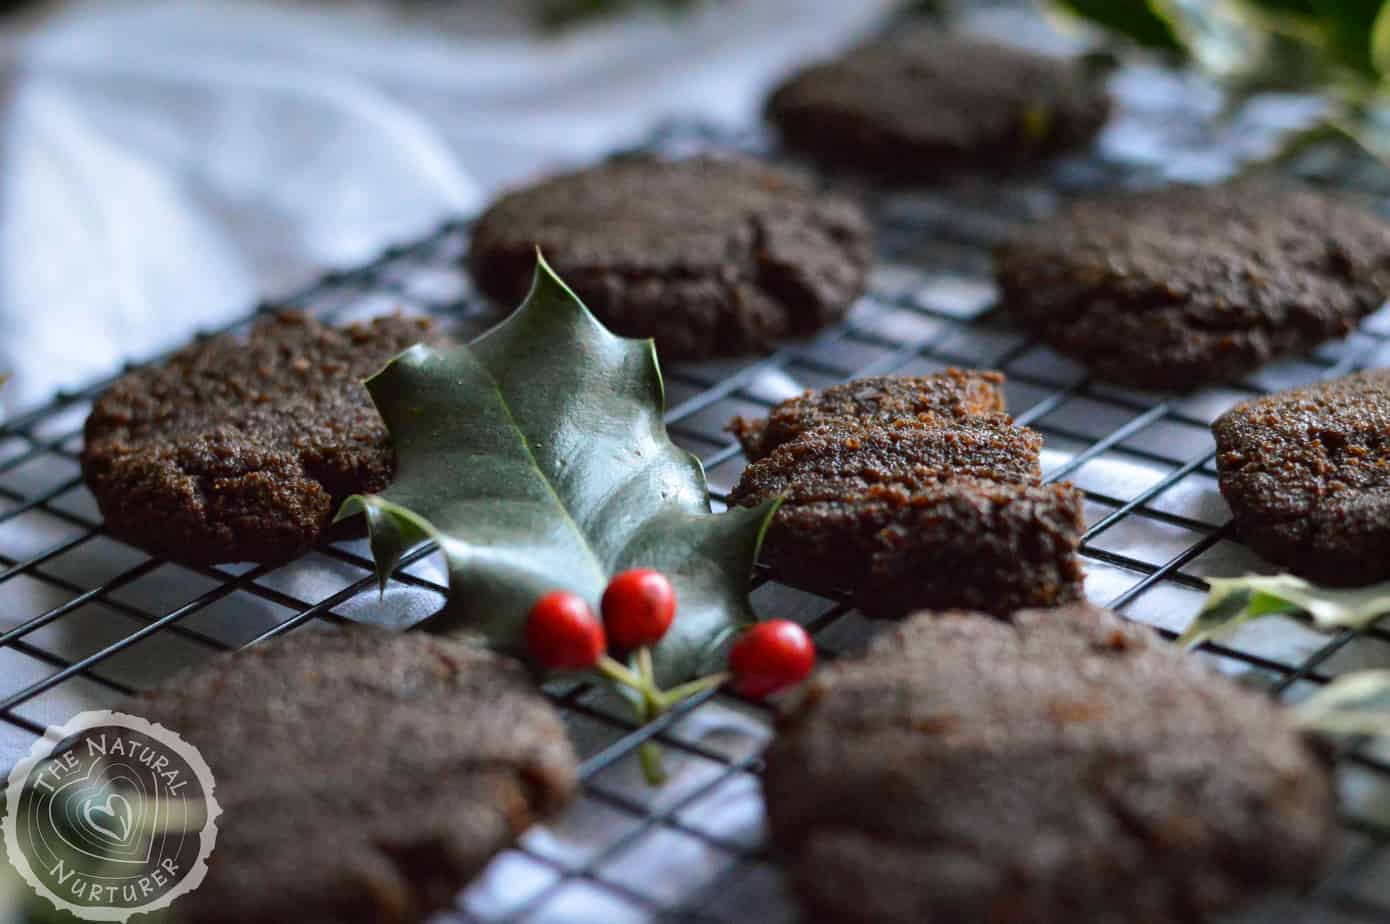 Amazingly inviting gingerbread cookies beautifully presented on a baking wrack.